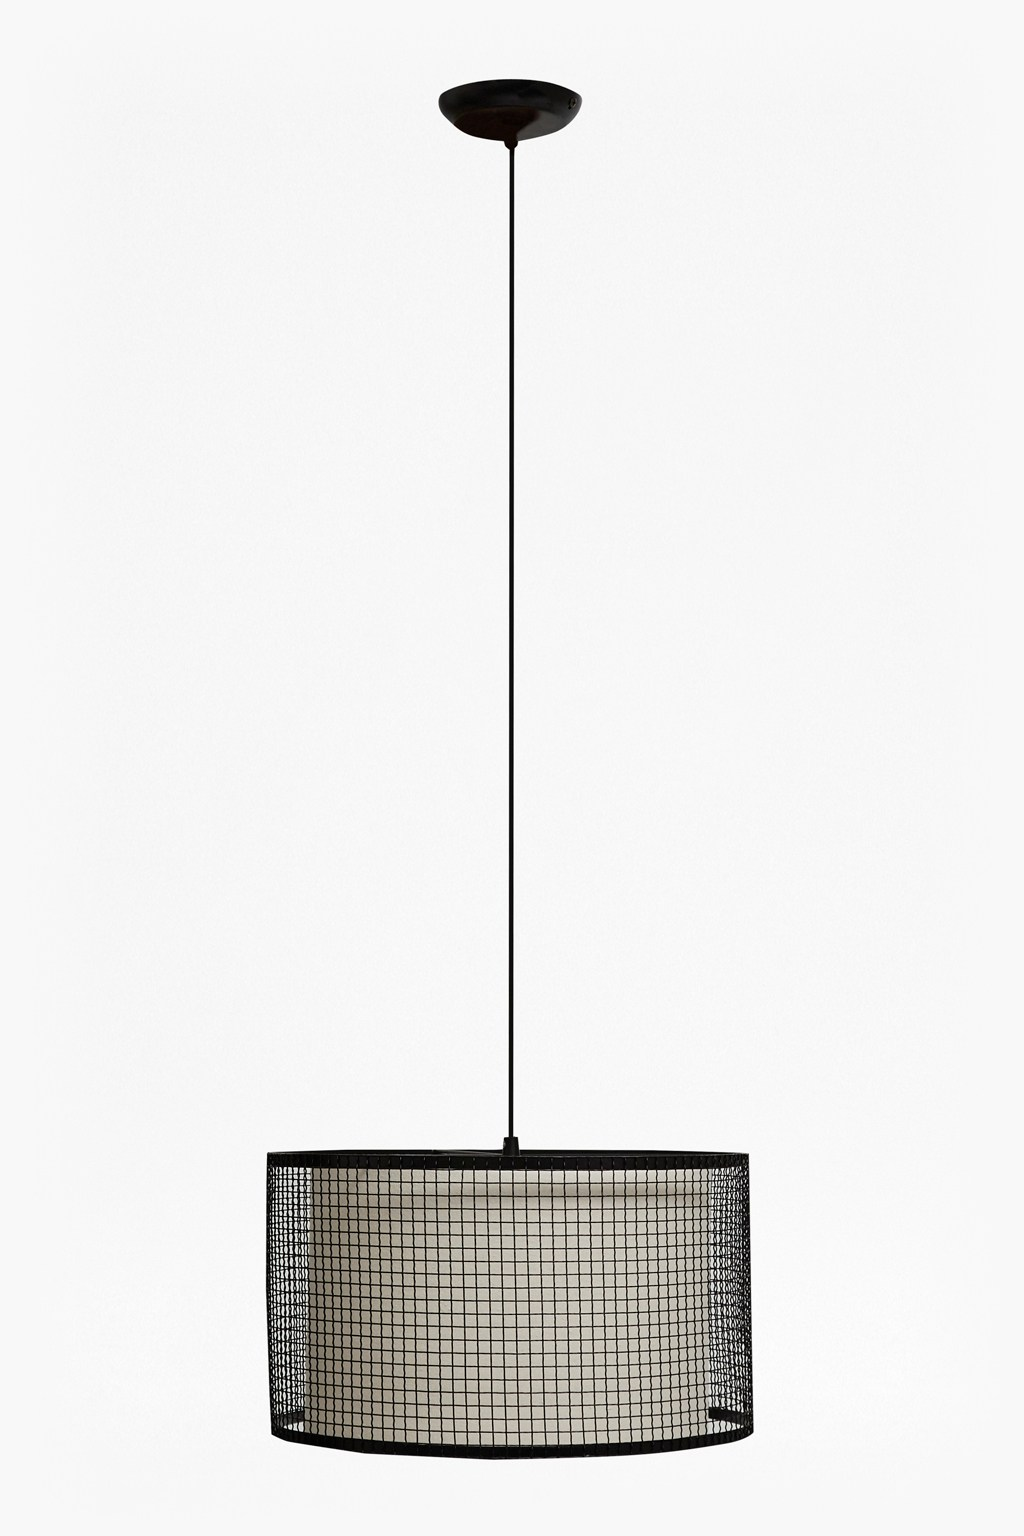 Chain Link Ceiling Lamp. Loading Images.